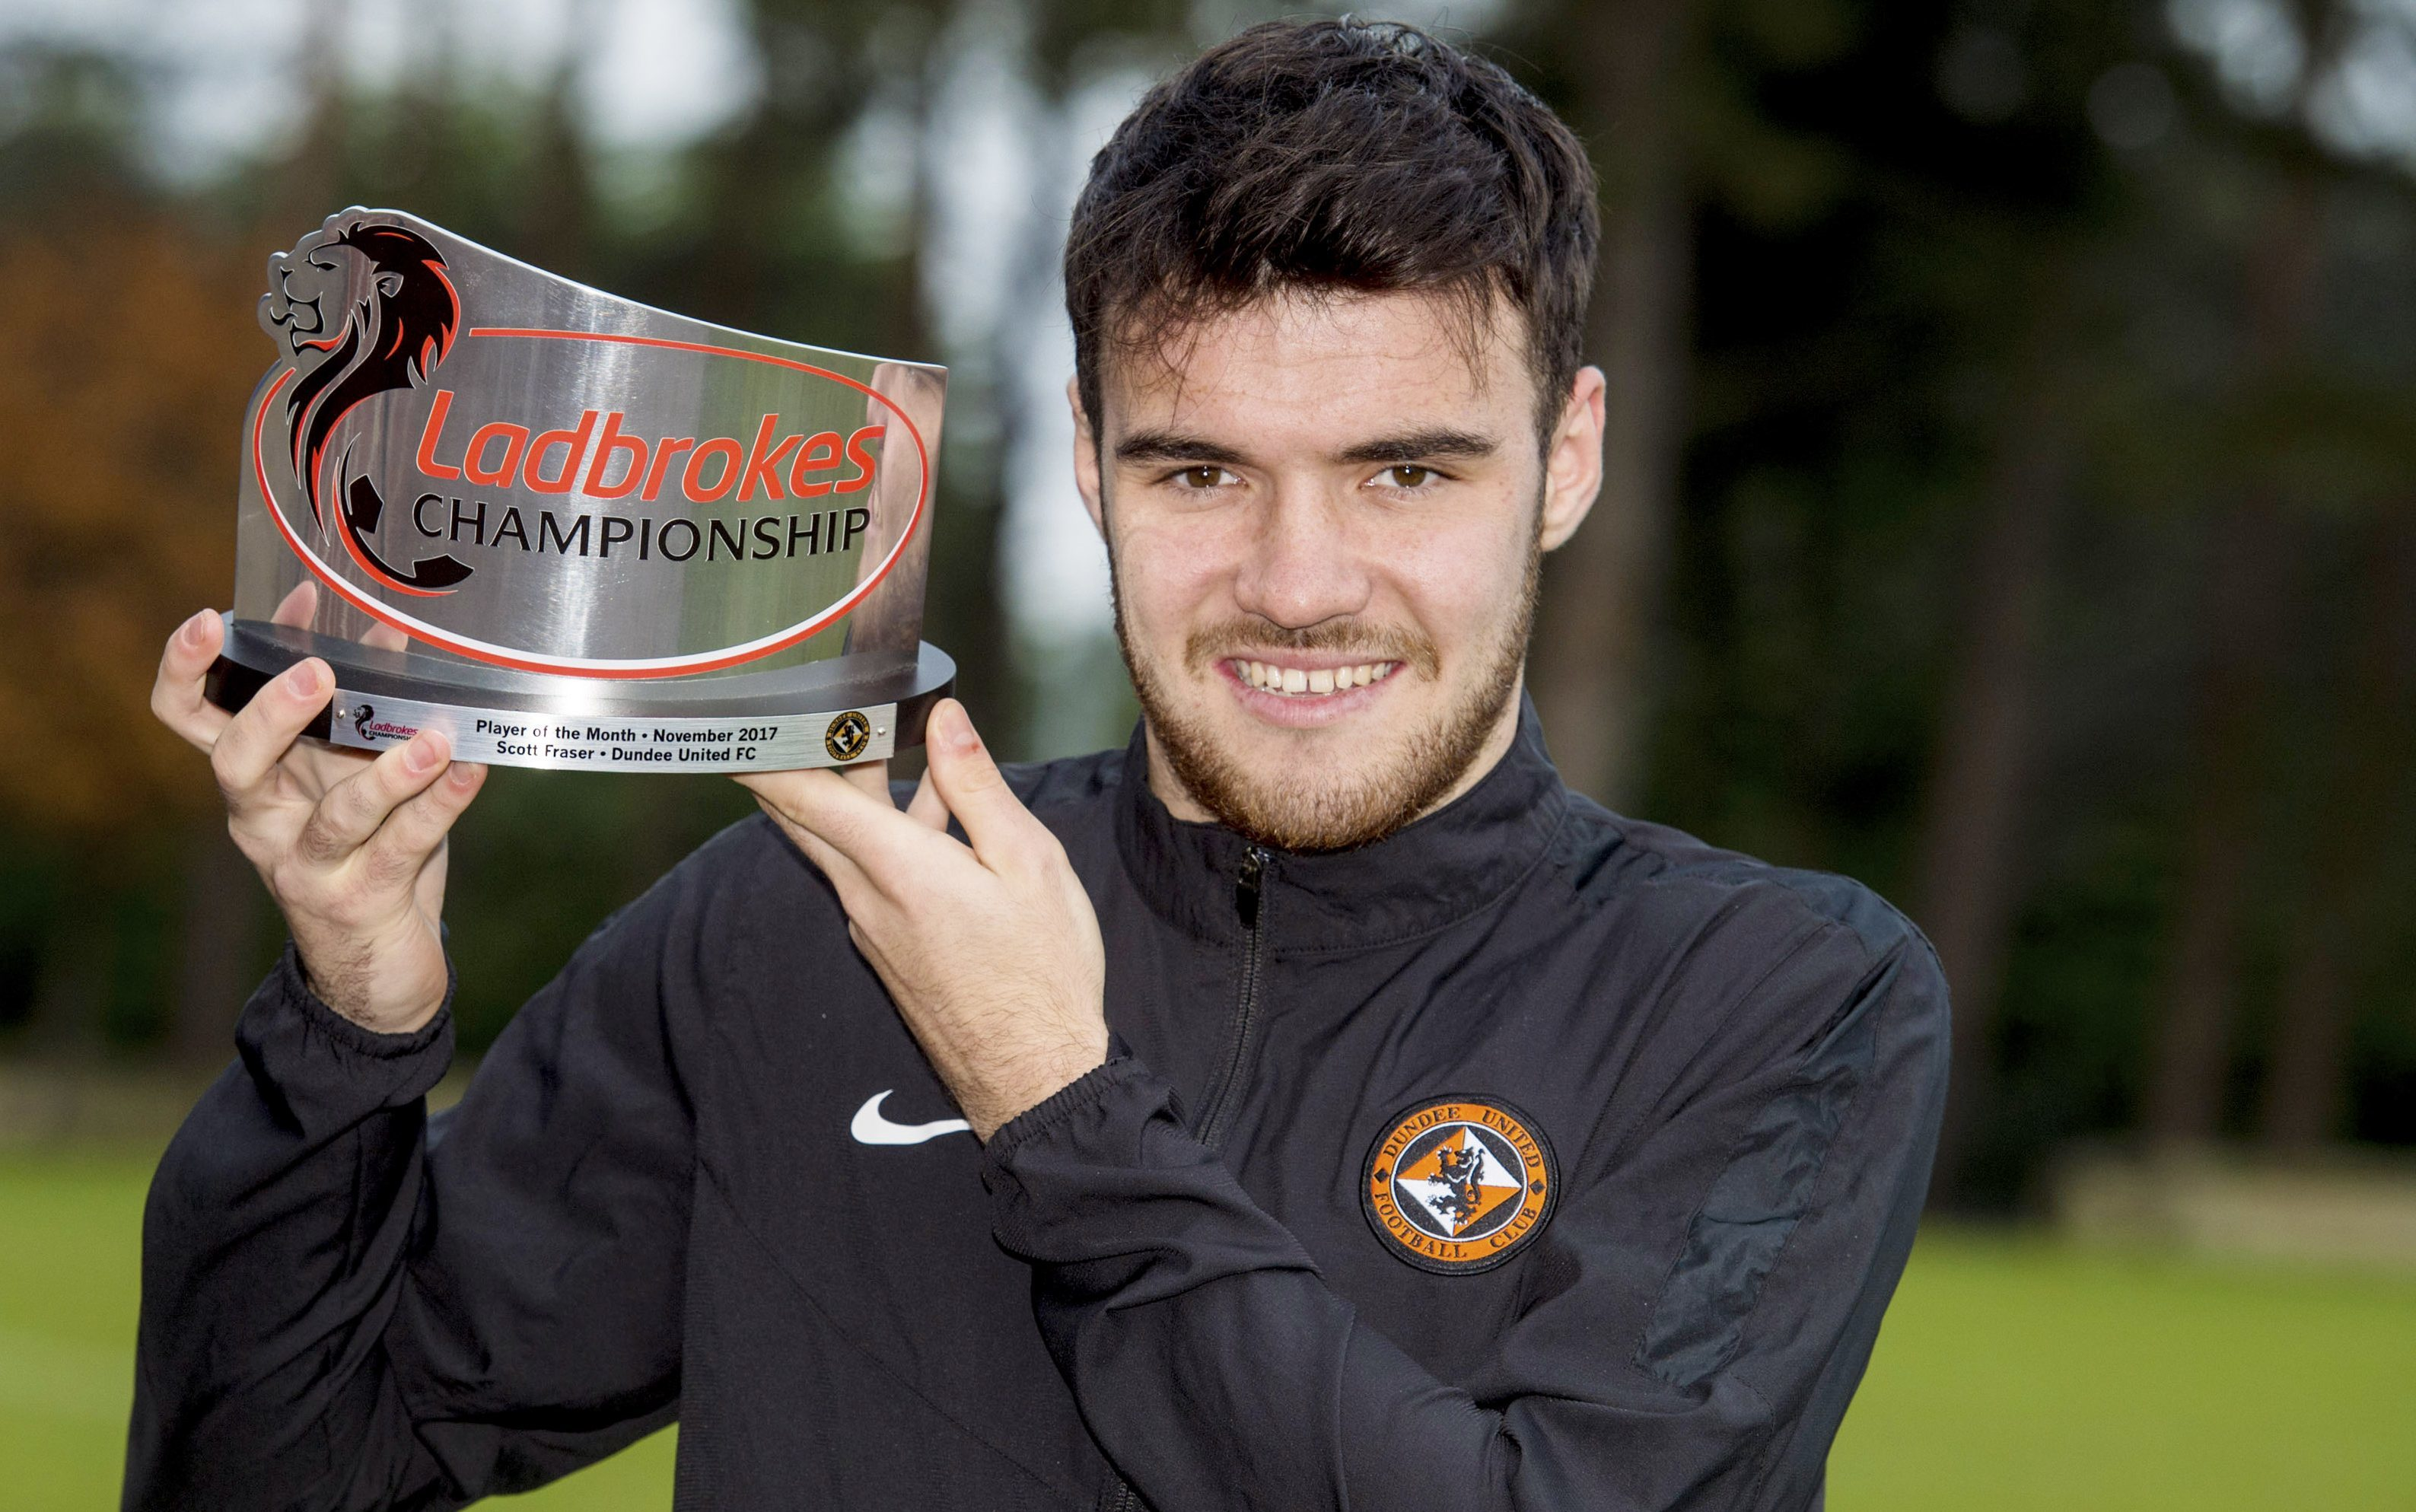 Dundee United's Scott Fraser wins the Ladbrokes Championship Player of the Month Award.